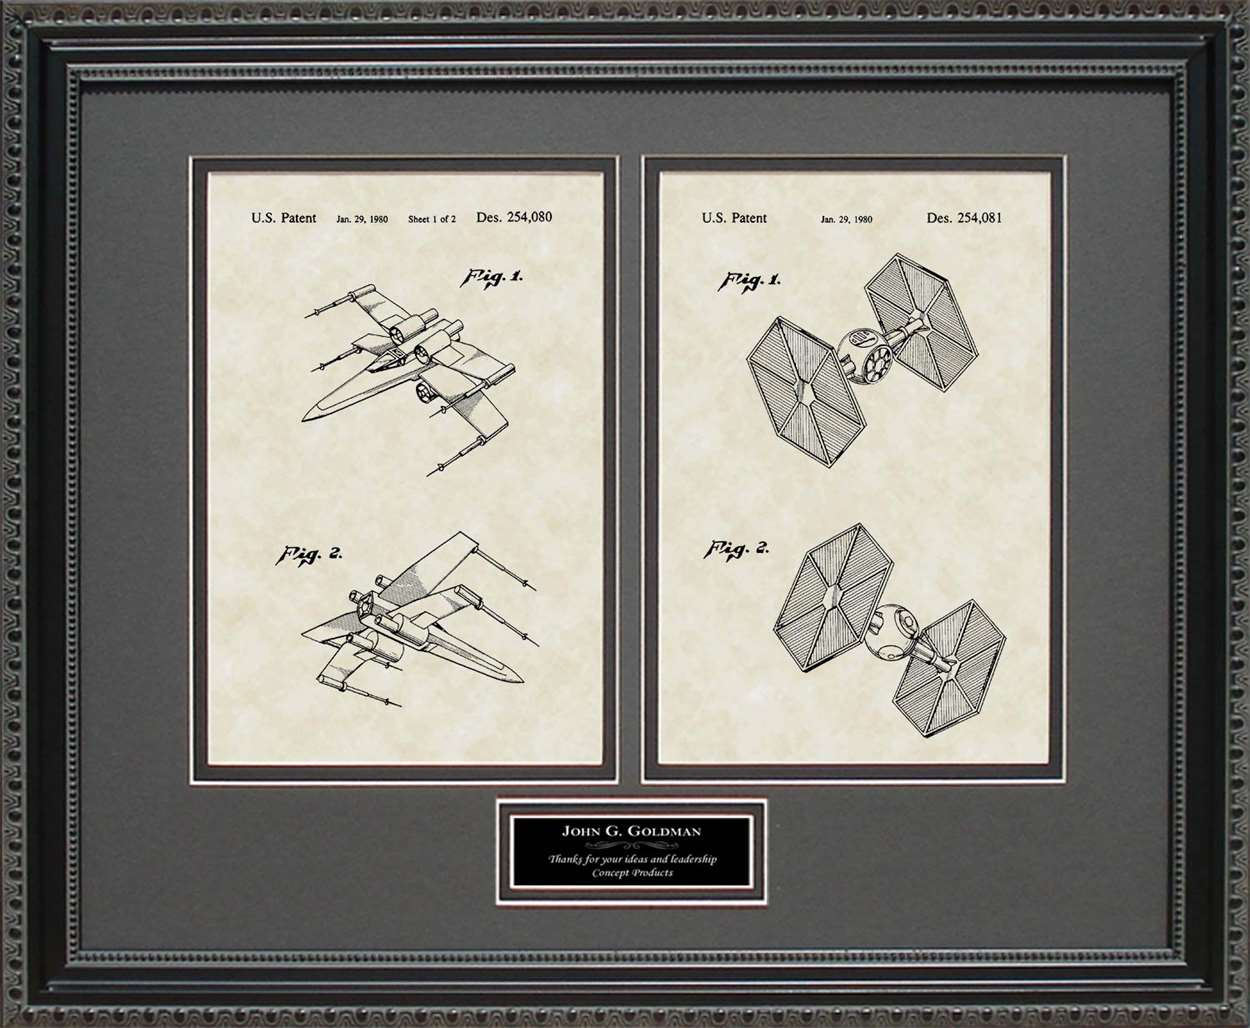 Personalized X-wing Fighter & TIE Fighter Patents, 16x20